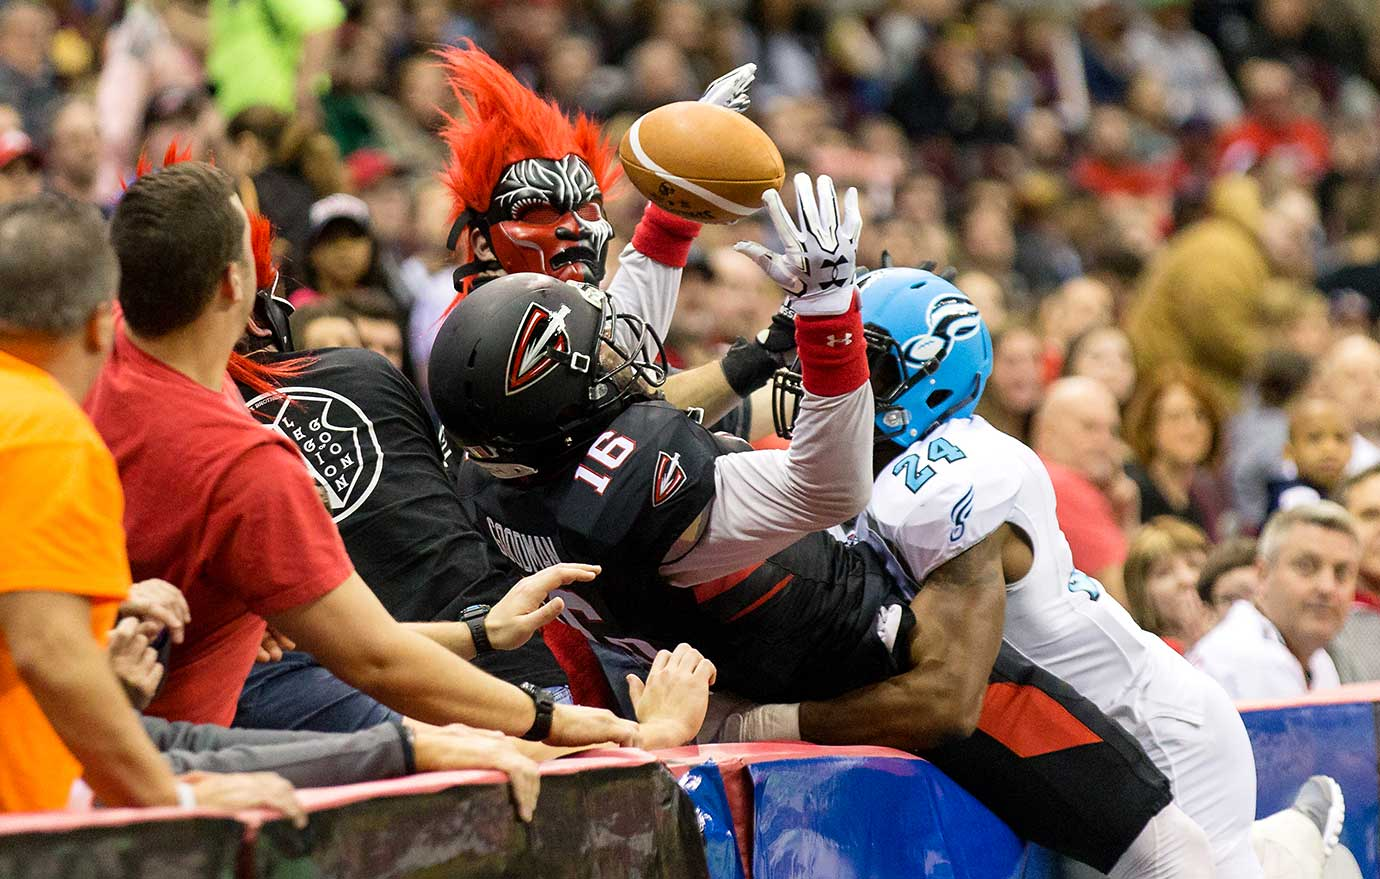 Cleveland Gladiators wide receiver Dominick Goodman tries to make a catch while falling into the stands and being defended by Torez Jones of the Philadelphia Soul.